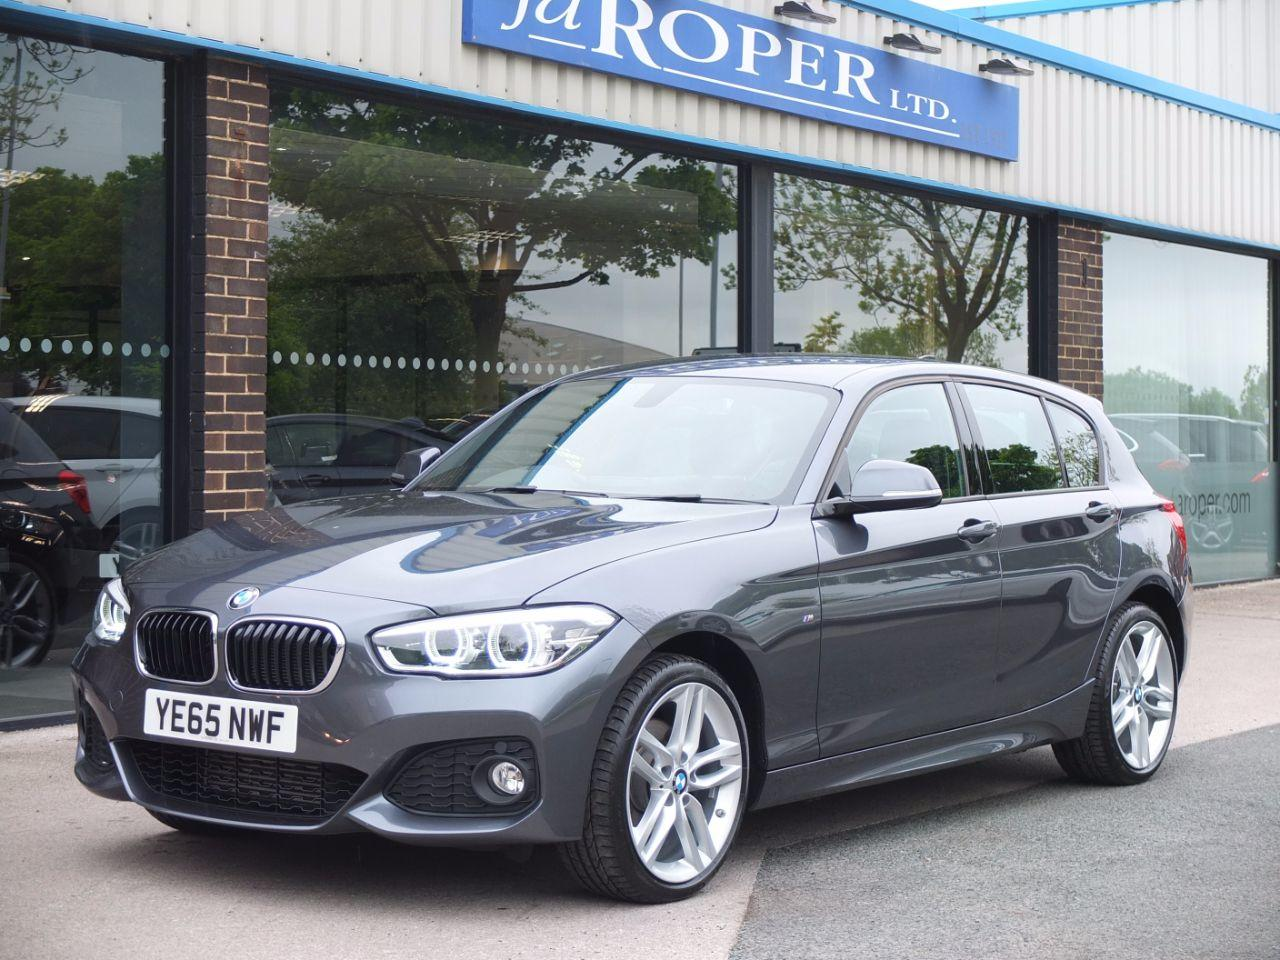 BMW 1 Series 2.0 120d xDrive M Sport Auto 5 door Hatchback Diesel Mineral Grey MetallicBMW 1 Series 2.0 120d xDrive M Sport Auto 5 door Hatchback Diesel Mineral Grey Metallic at fa Roper Ltd Bradford